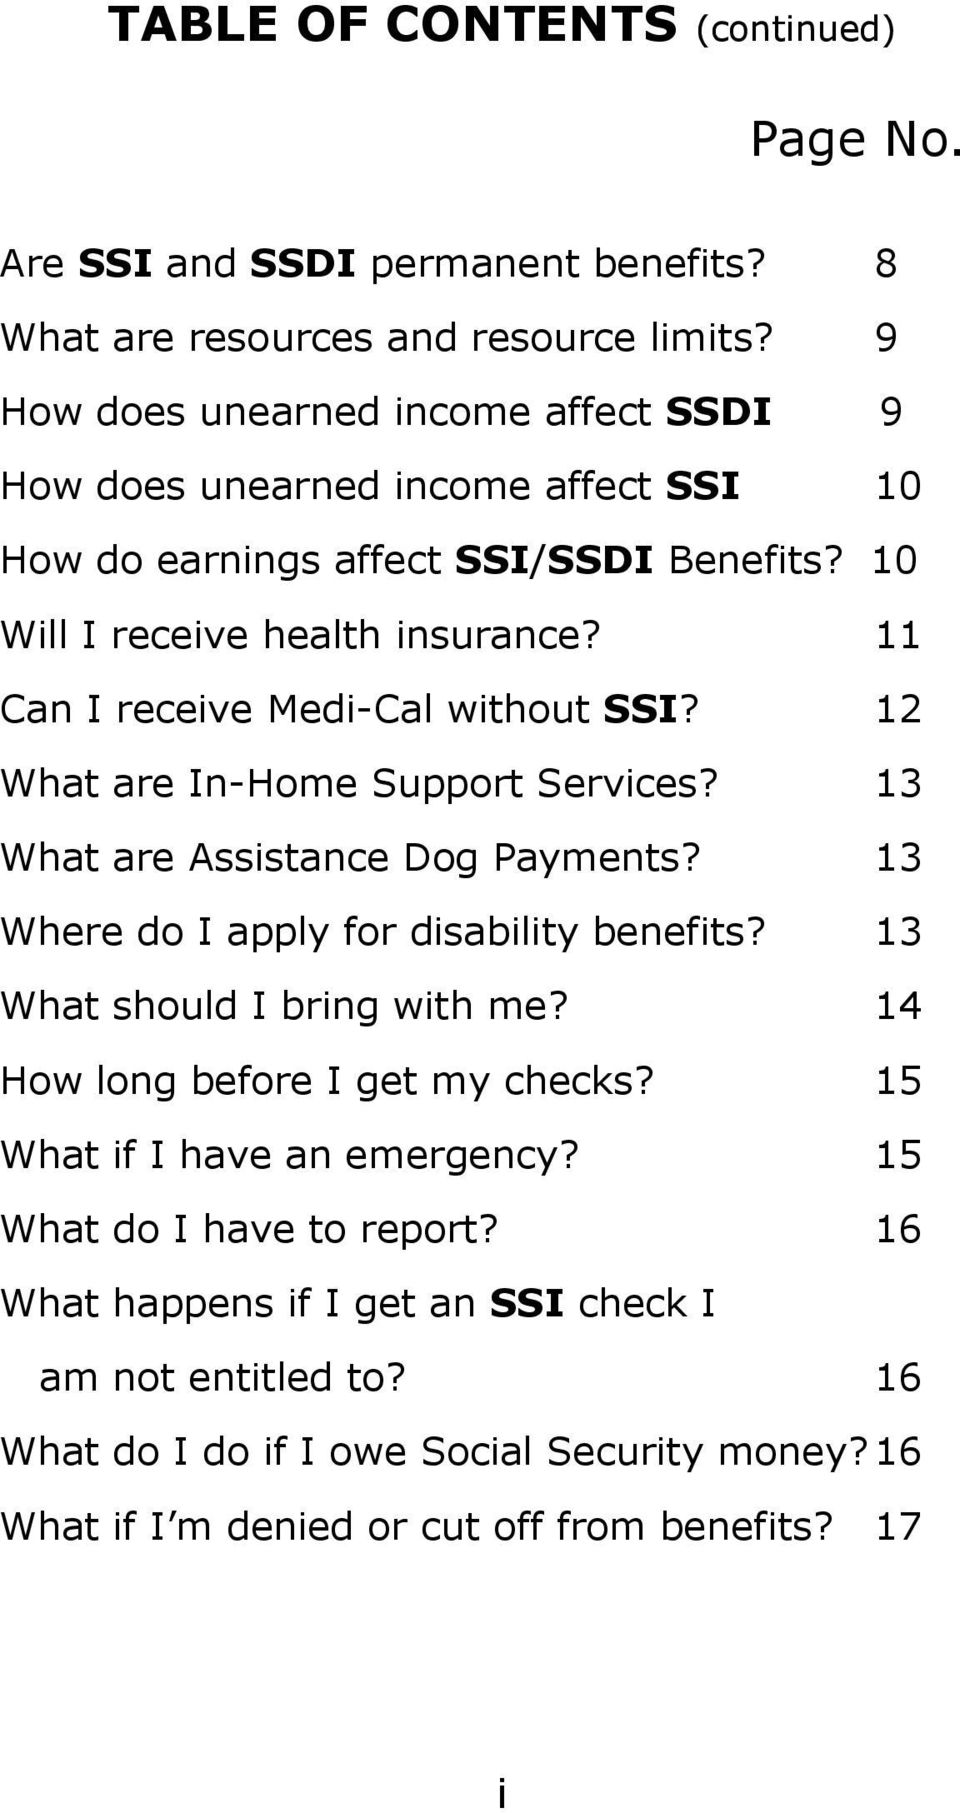 11 Can I receive Medi-Cal without SSI? 12 What are In-Home Support Services? 13 What are Assistance Dog Payments? 13 Where do I apply for disability benefits?